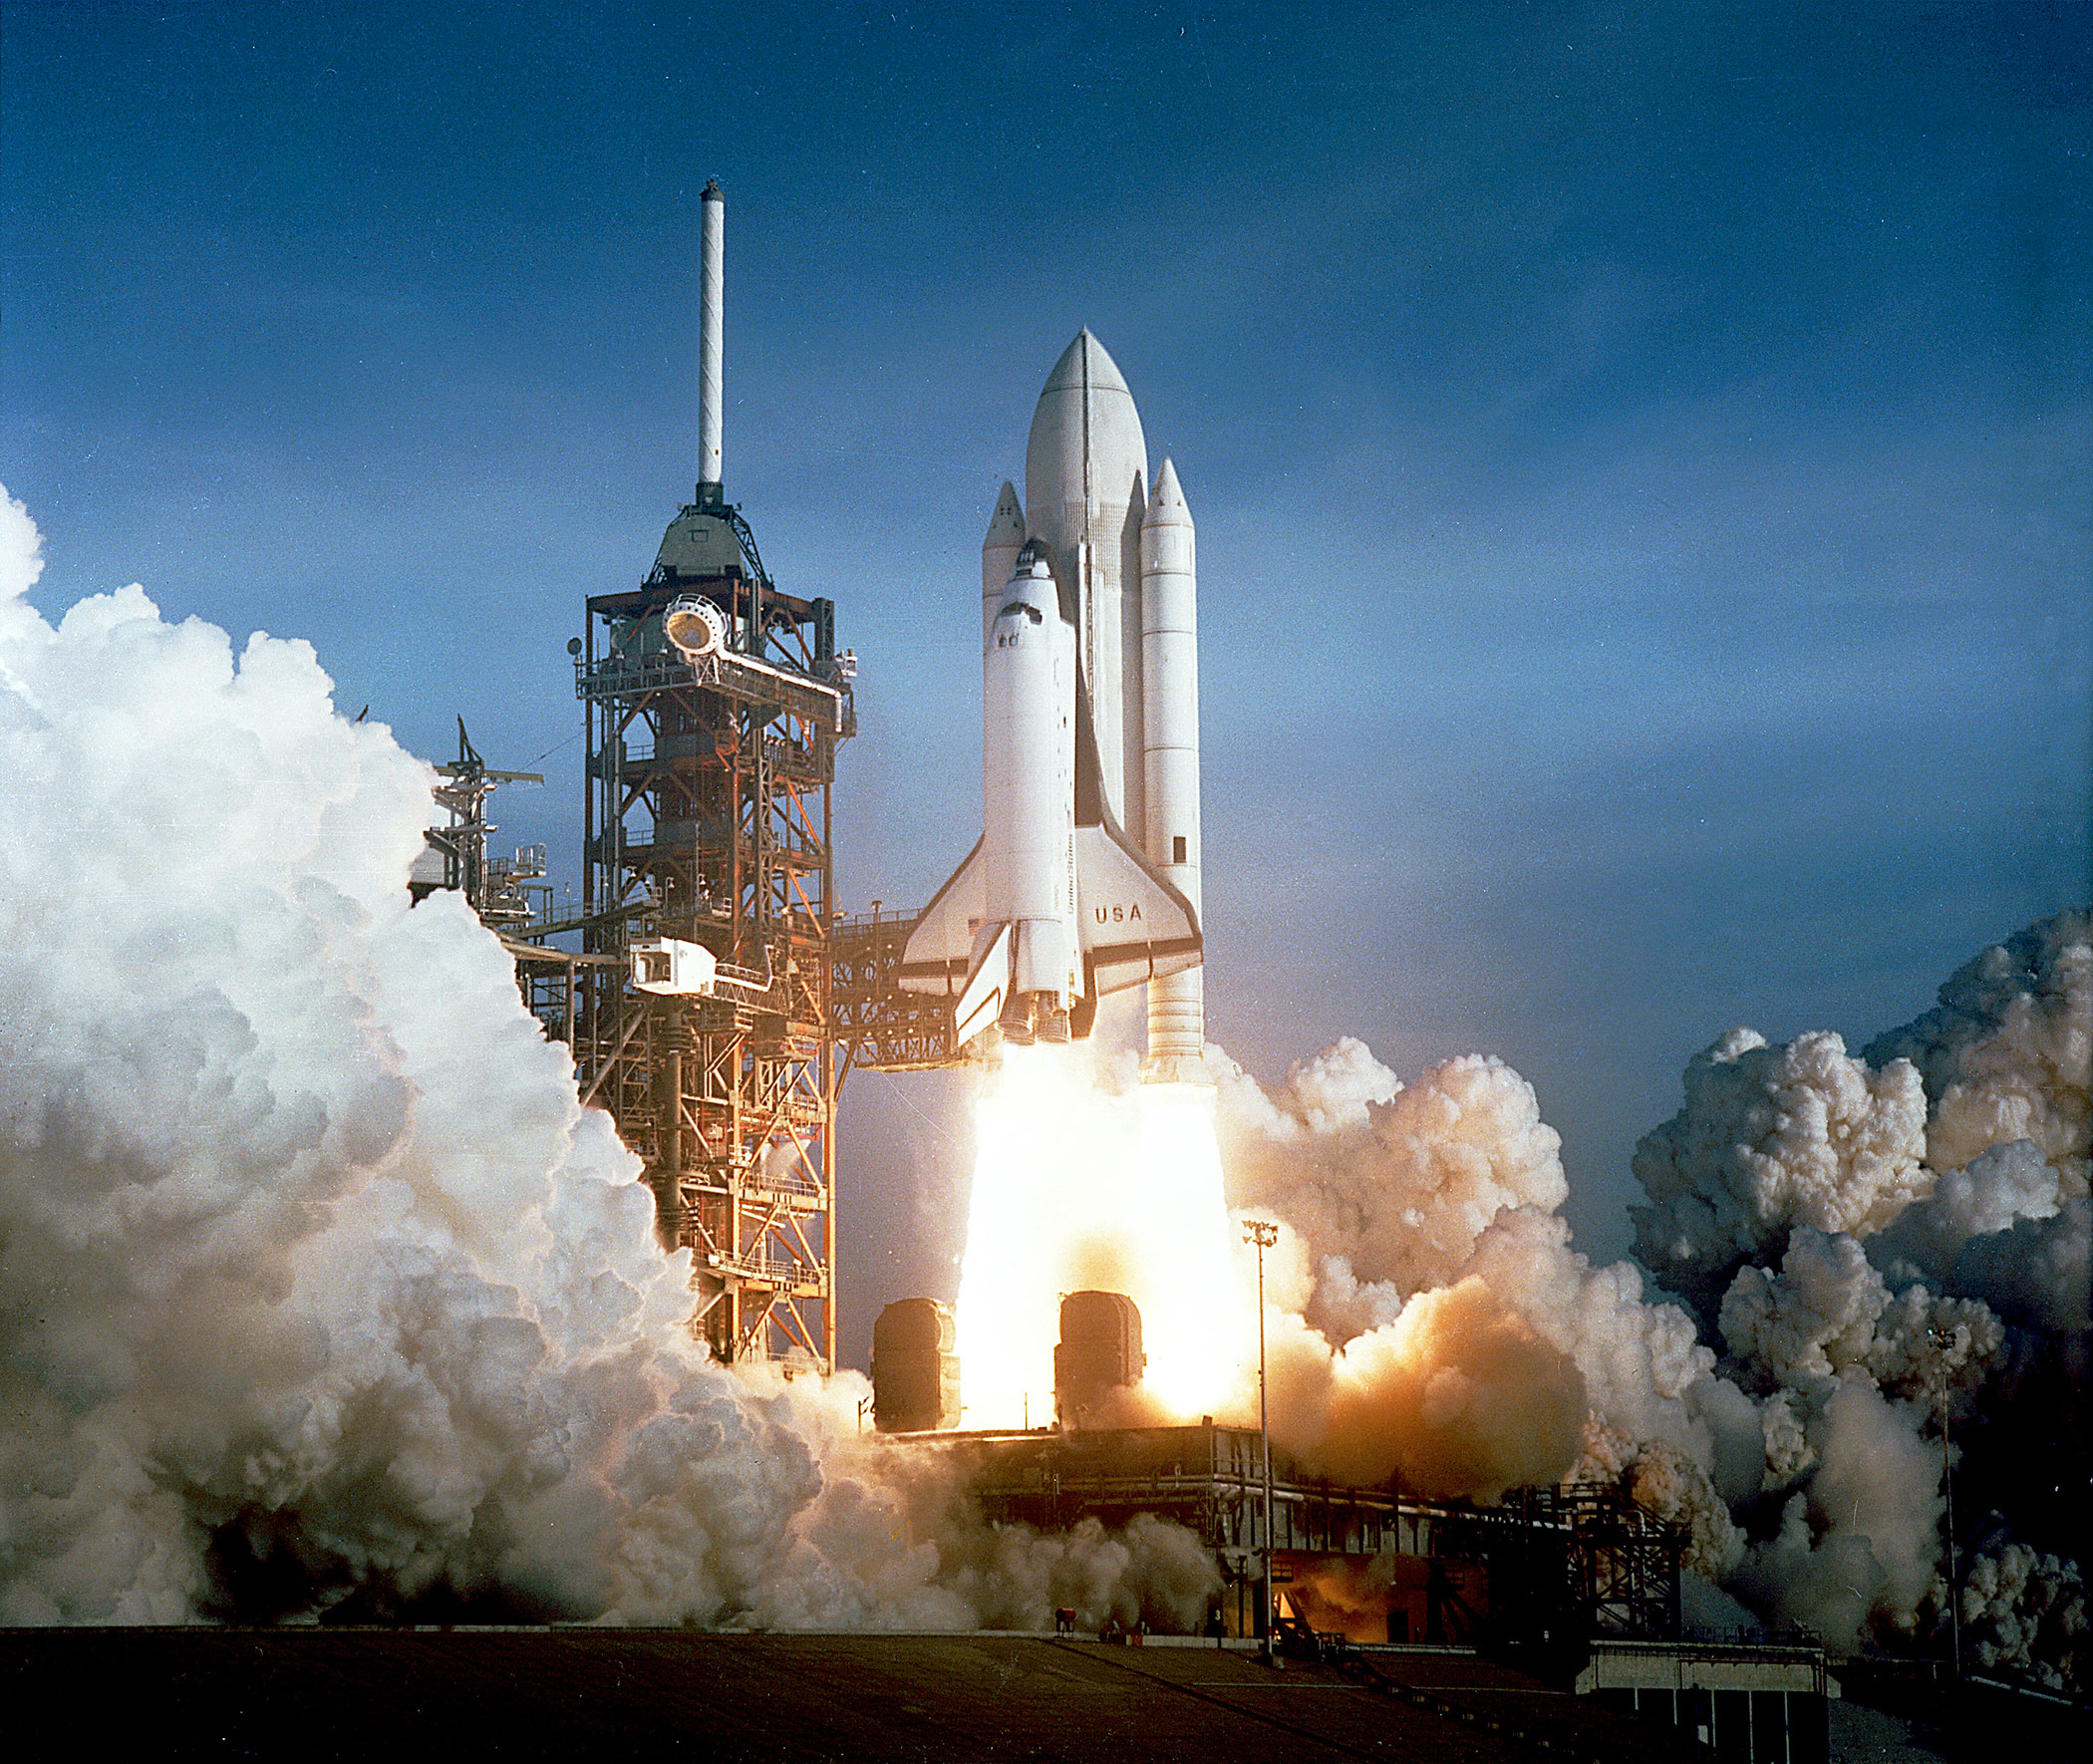 <b>First Shuttle Lift Off, 1981</b>; The STS-1 was the first orbital spaceflight of NASA's Space Shuttle Program.